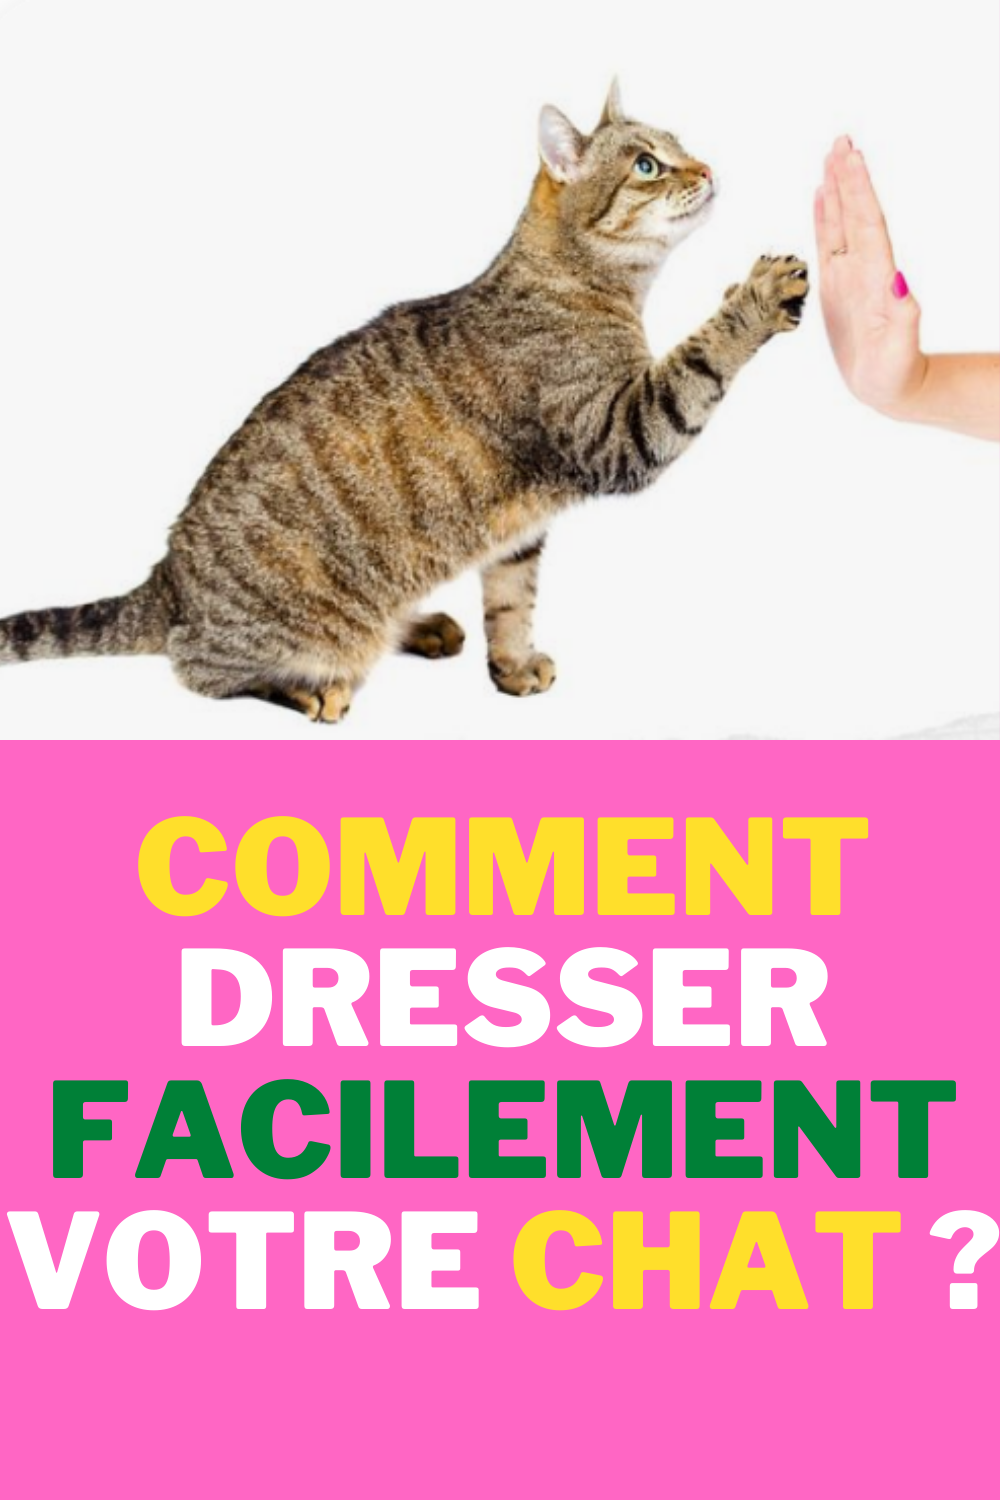 Comment Dresser Facilement Votre Chat ? #chat #cat #cats #catsofinstagram #gato #of #catstagram #instacat #catlover #instagram #chats #chaton #katze #meow #love #catlife #cute #catoftheday #kitten #neko #kitty #catlovers #gatto #cutecat #pet #pets #animal #animals #animaux #bhfyp